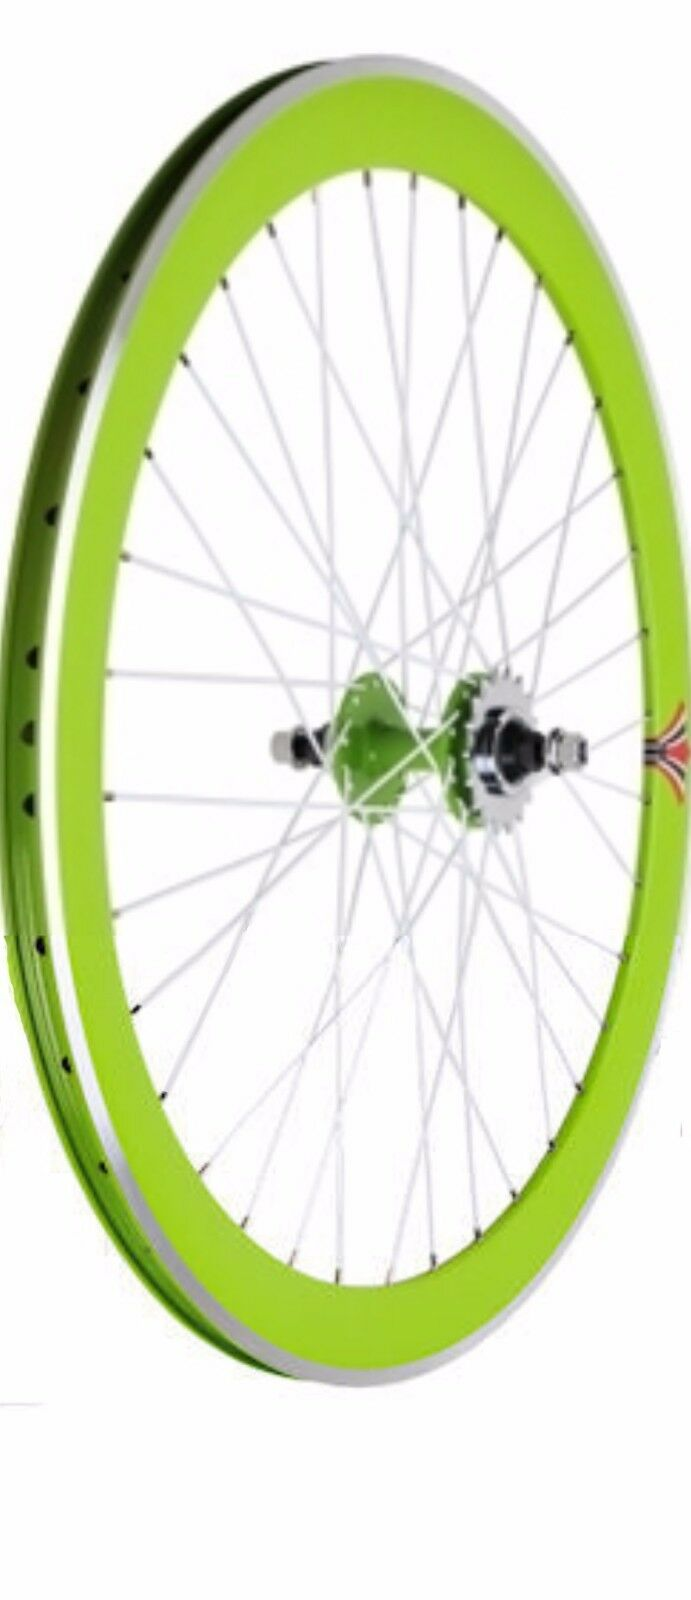 Deep V 50mm Fixed Gear, Fixie, Flip-Flop Hub Rear Bicycle Wheel, Green & White